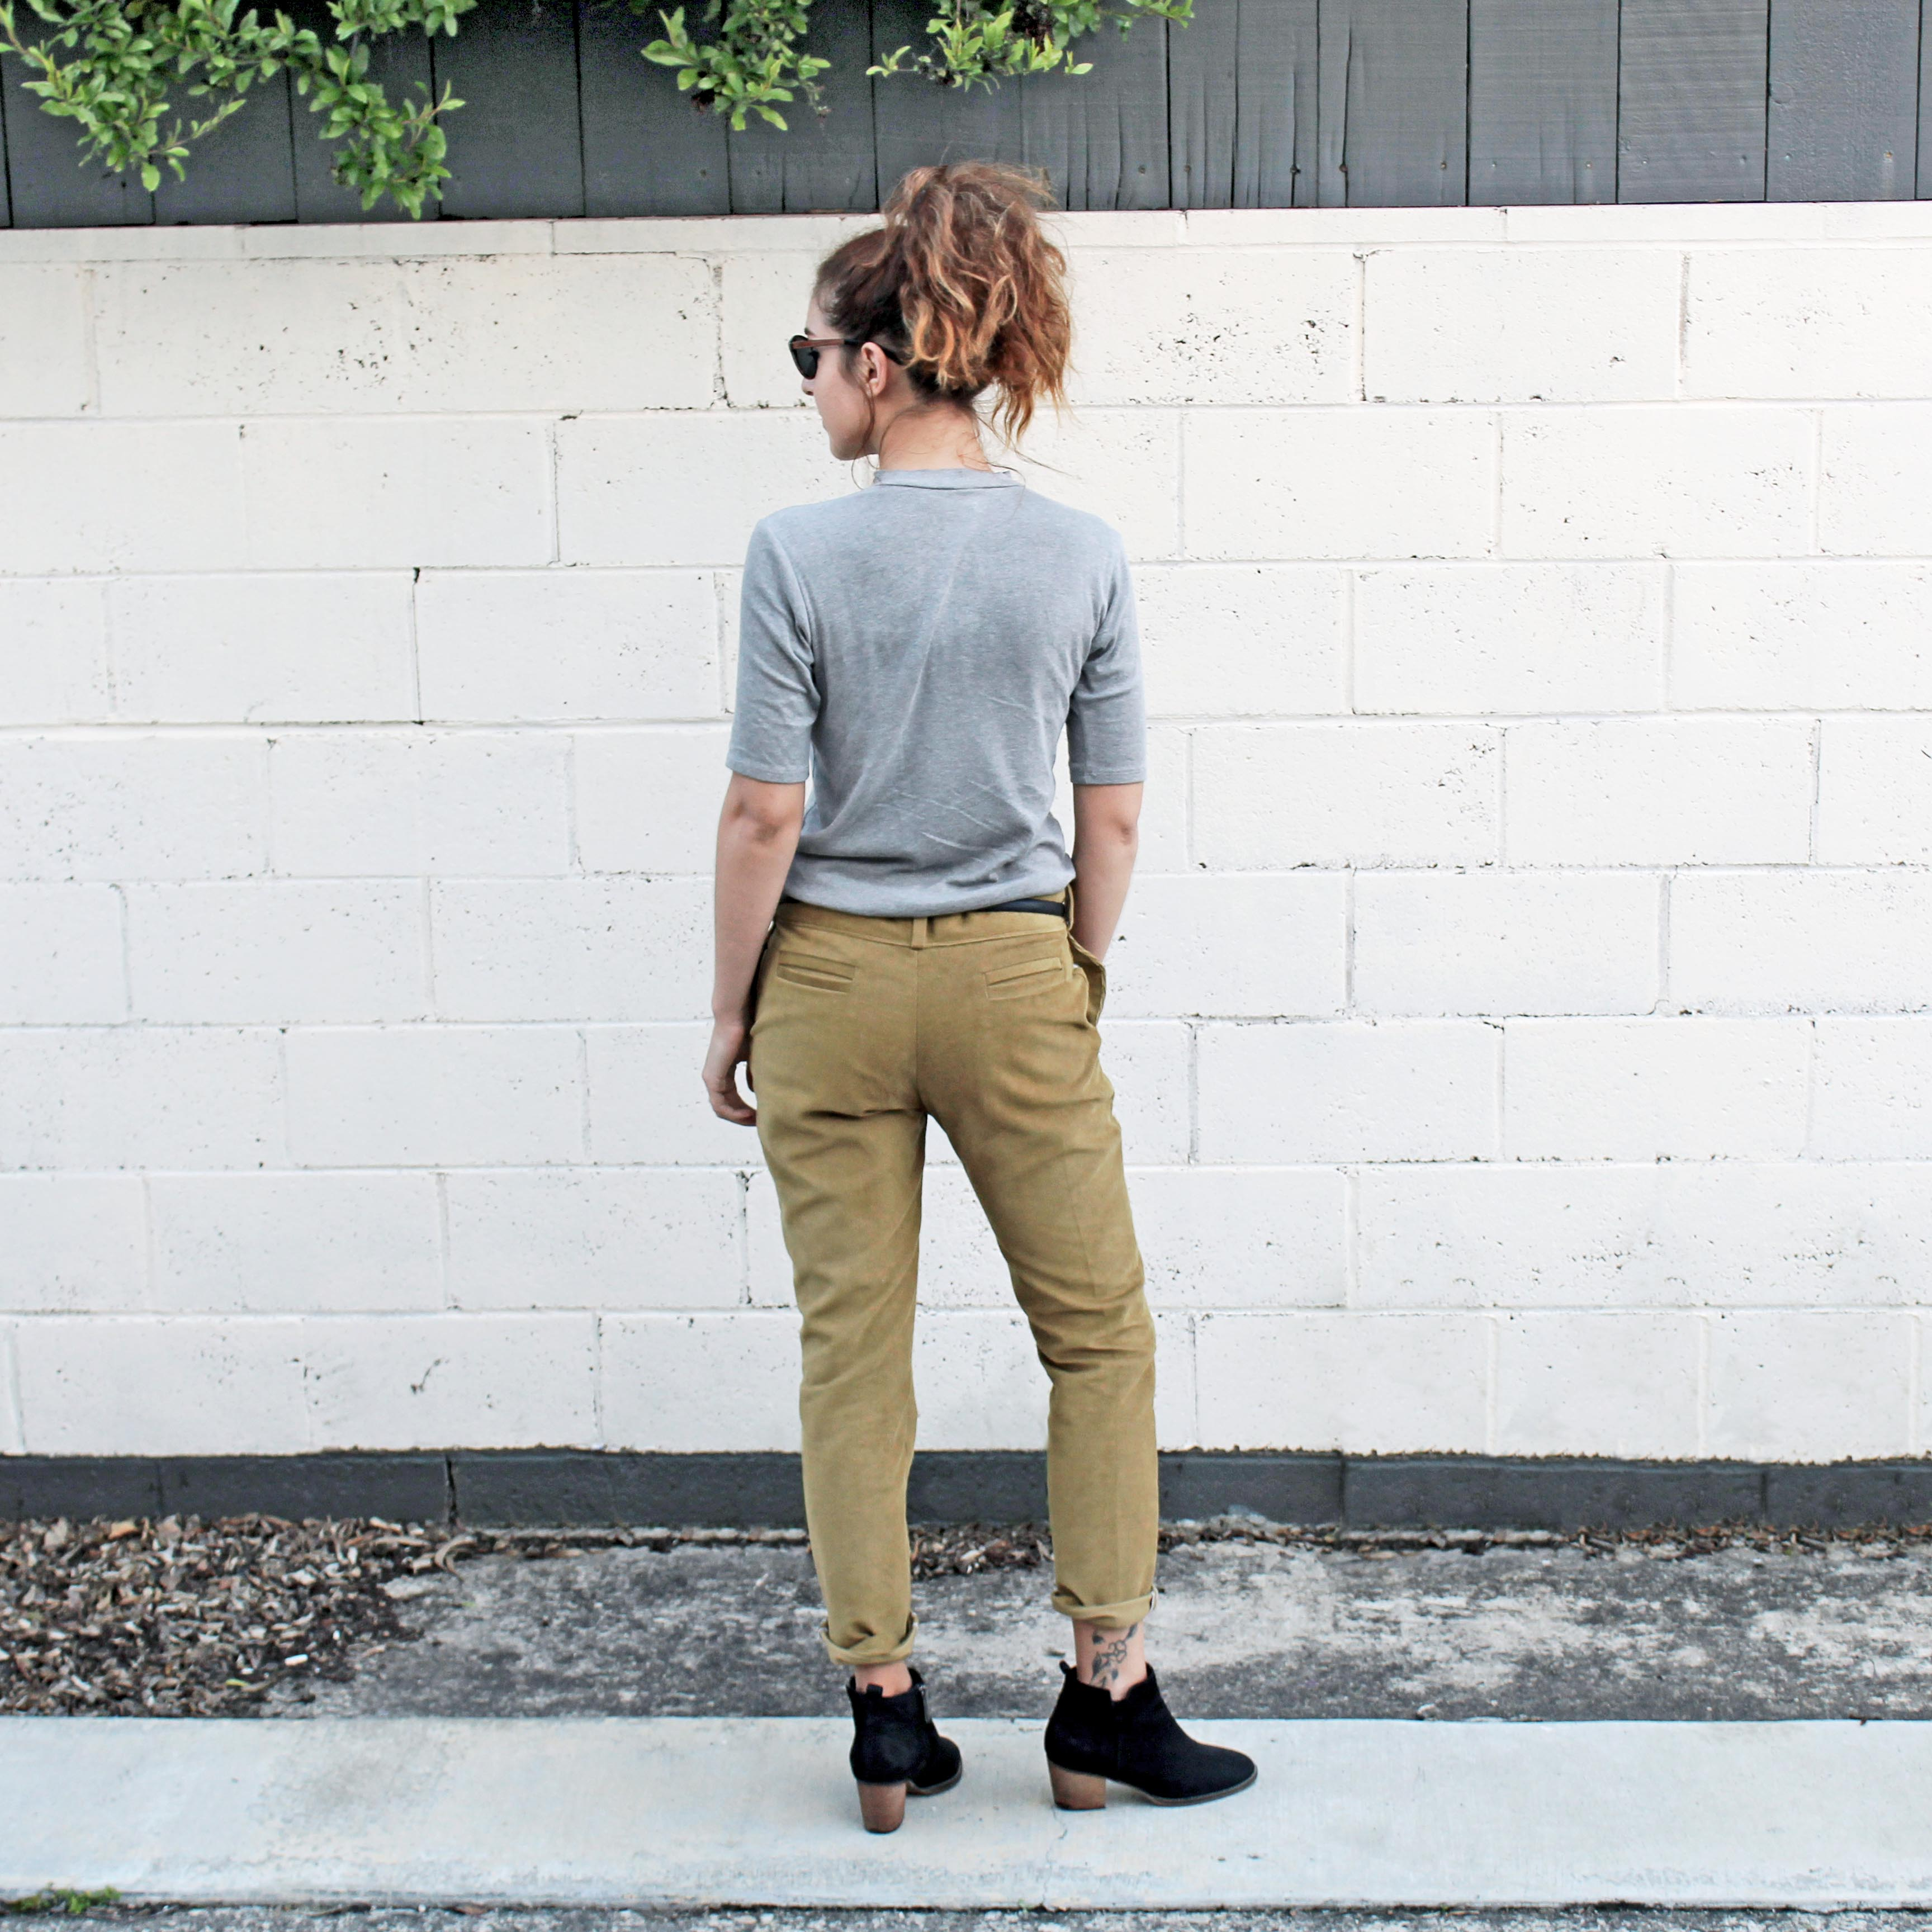 How To Sew A Double Welt Pocket Sewing Tutorial: The Stone Trouser Back View